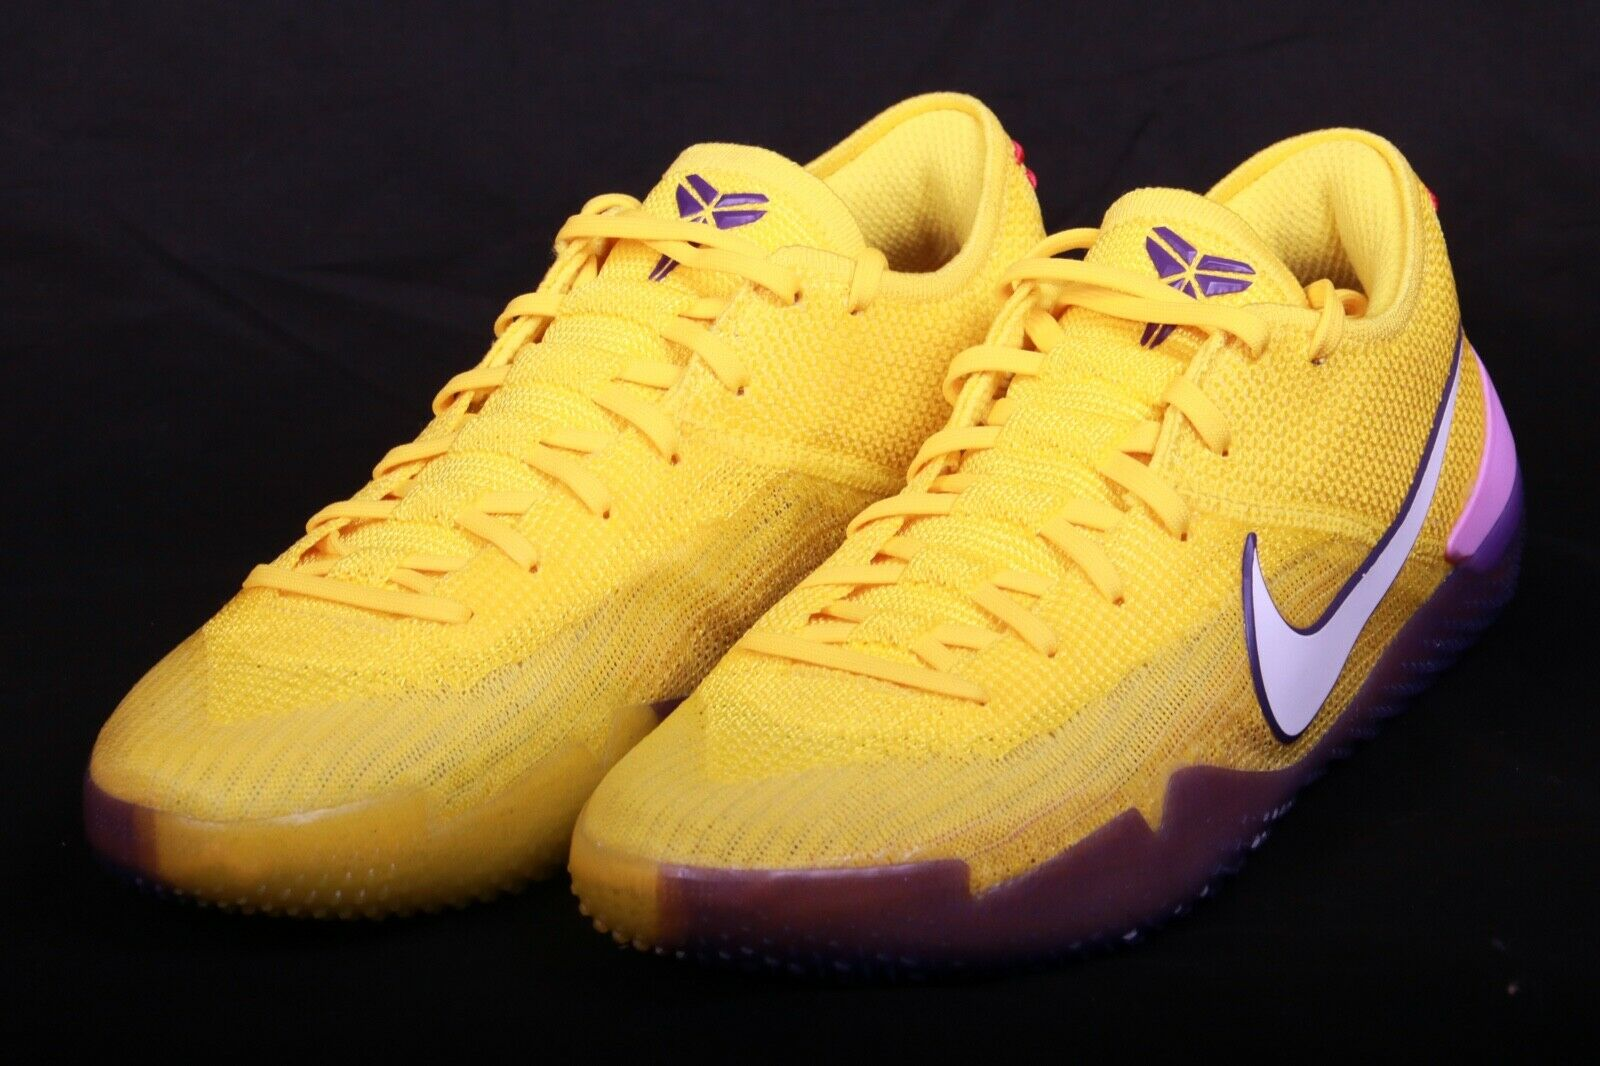 Nike Men's Kobe AD NXT 360 Yellow QS Strike Mamba Lakers AQ1087 700 Sz 7.5-15